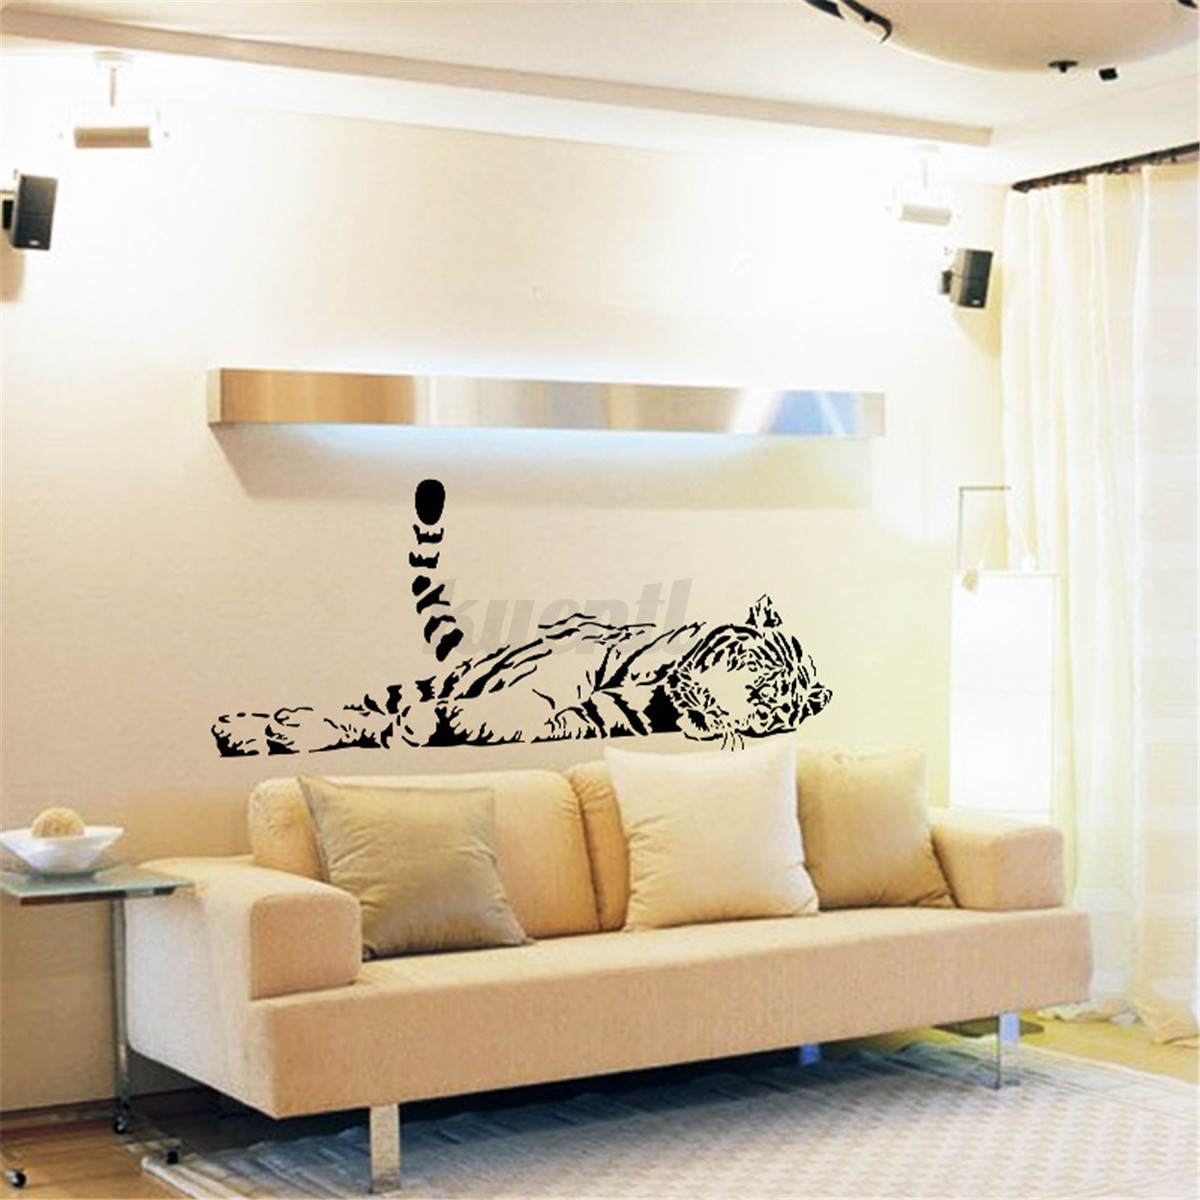 removible tigre pared pegatinas vinilo etiqueta decal mural decor casa decal ebay. Black Bedroom Furniture Sets. Home Design Ideas